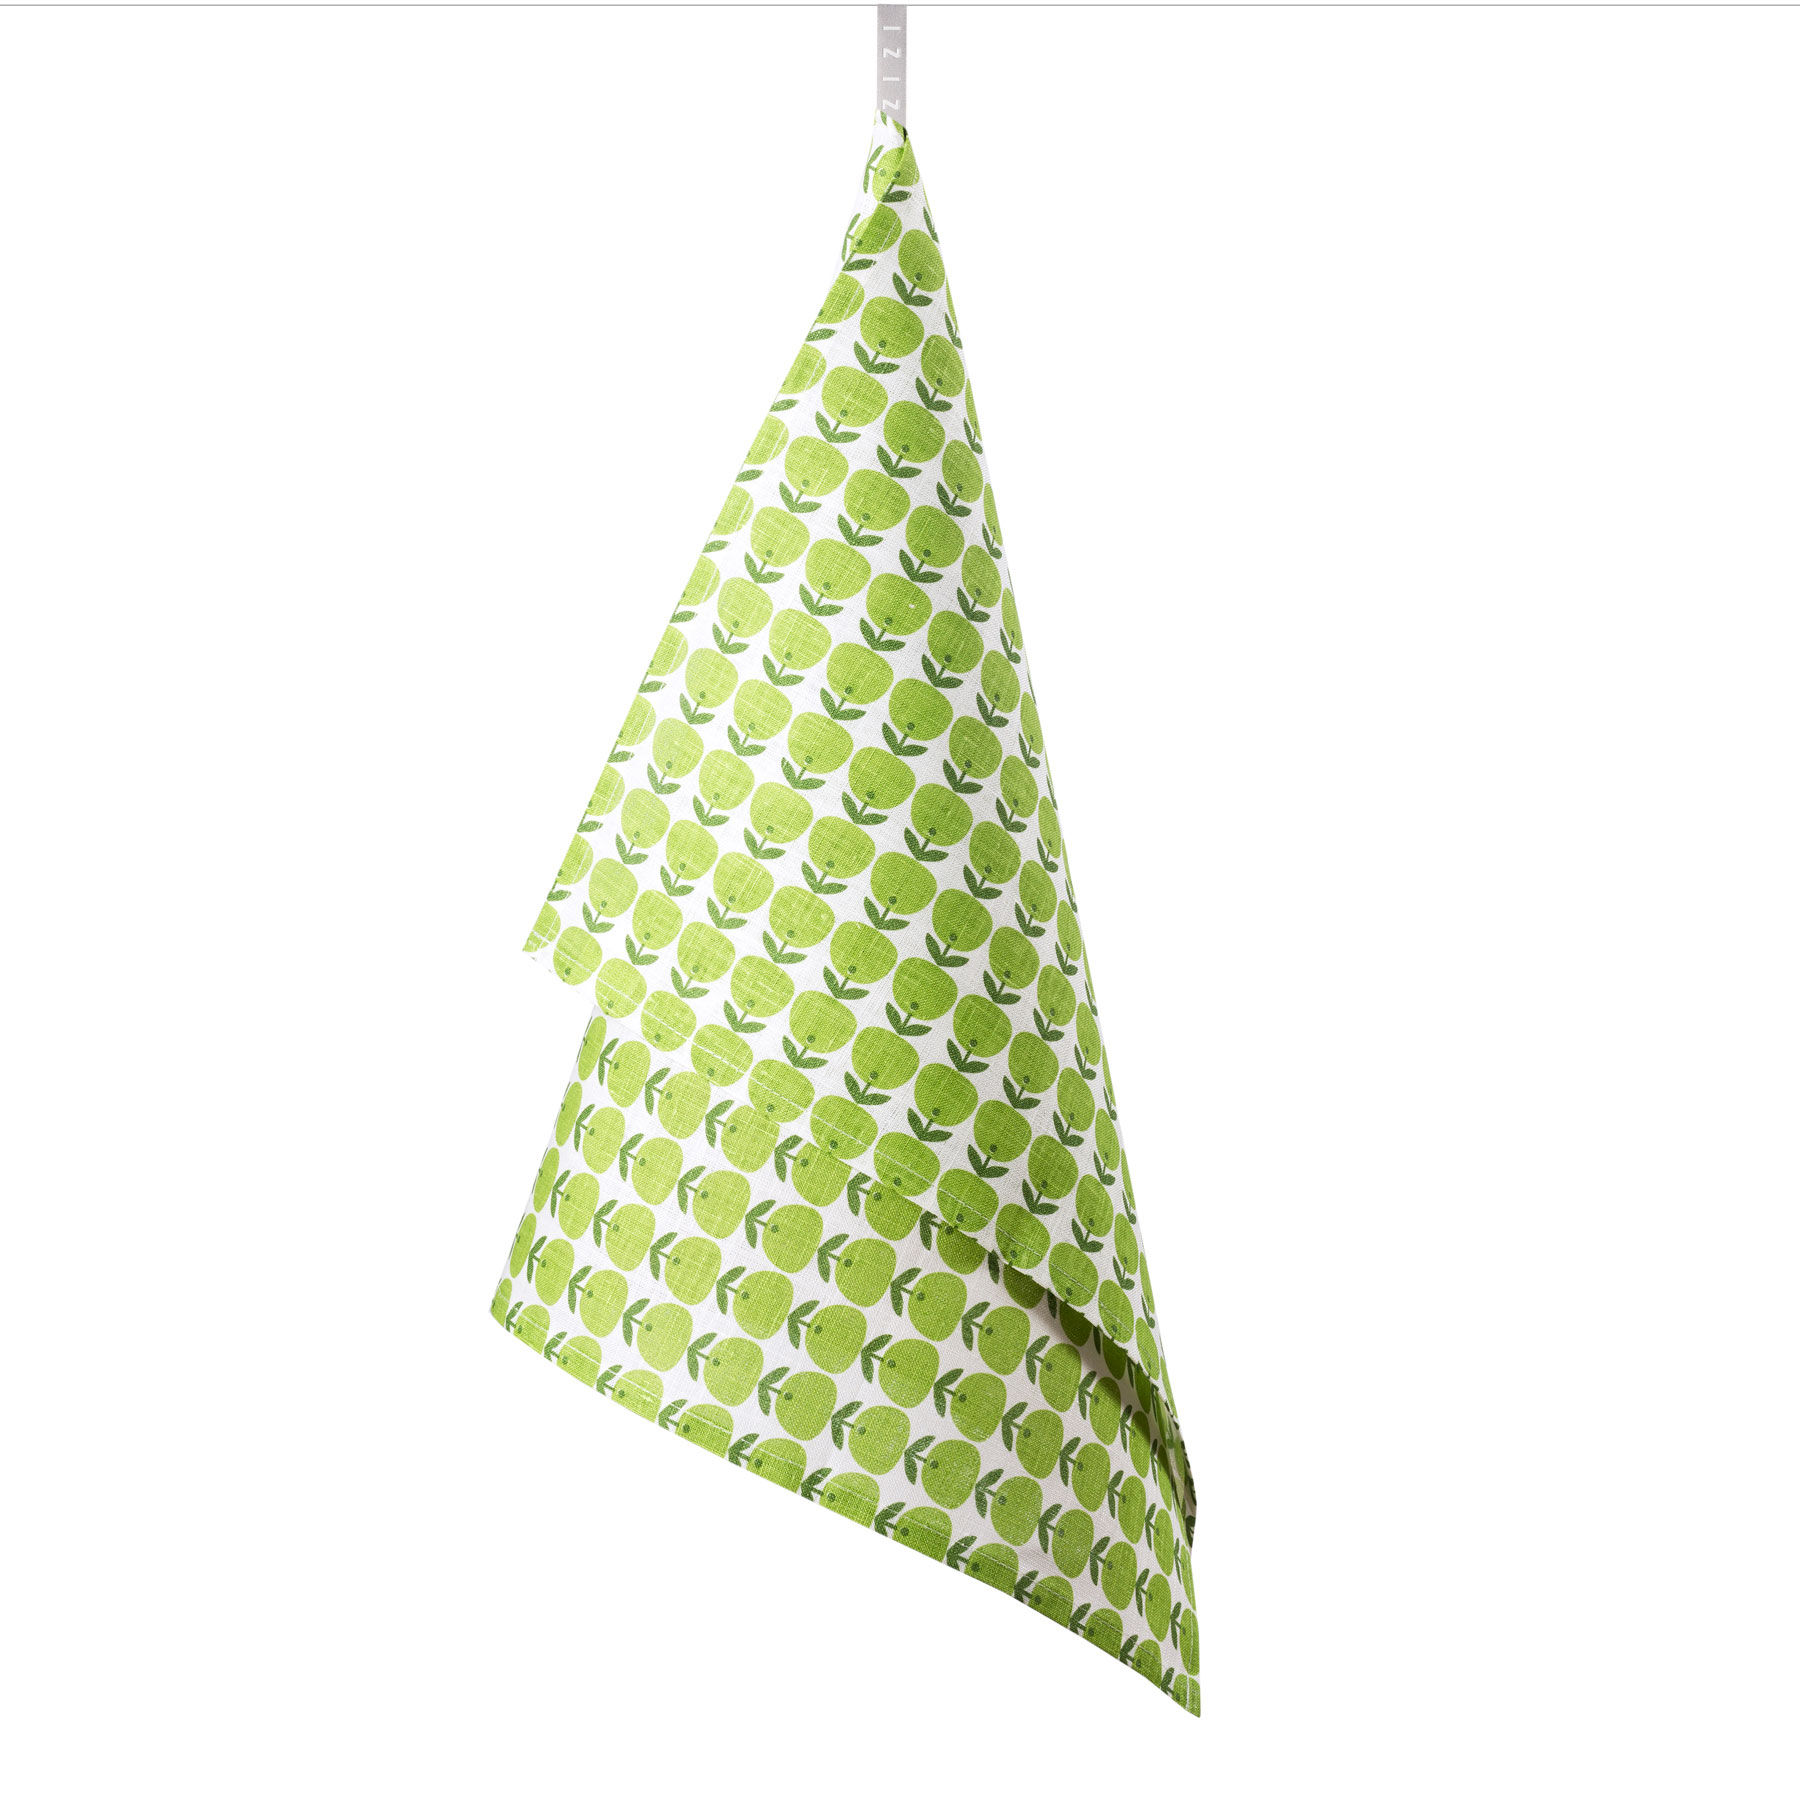 TEA TOWEL APPLE <br />green